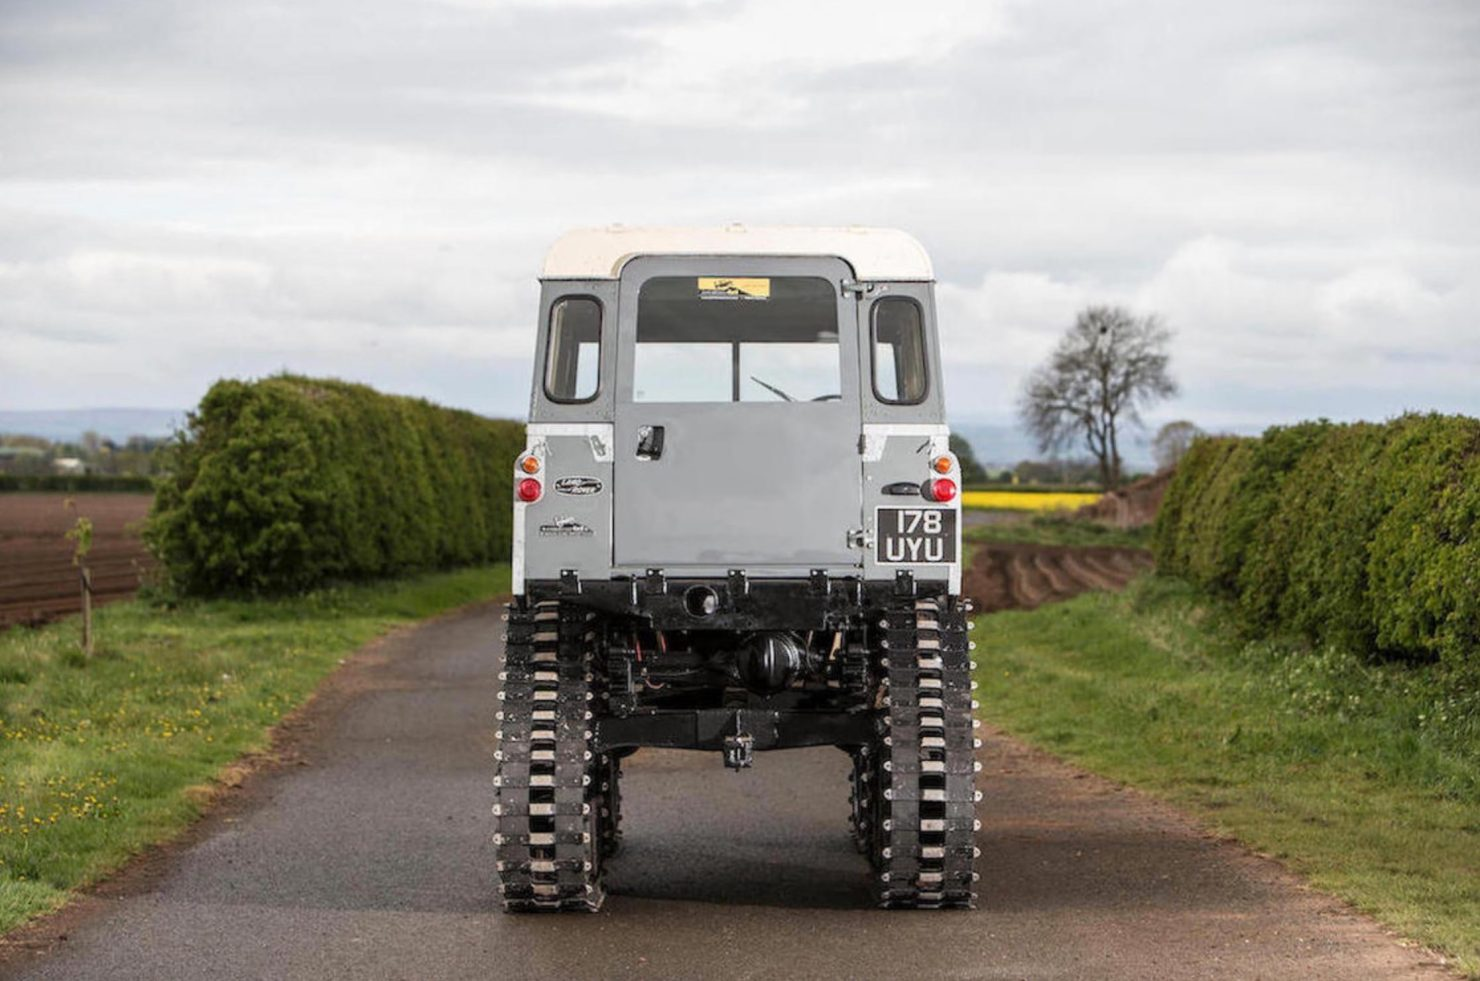 land rover Cuthbertson 4 1480x981 - 1958 Tracked Cuthbertson Land Rover